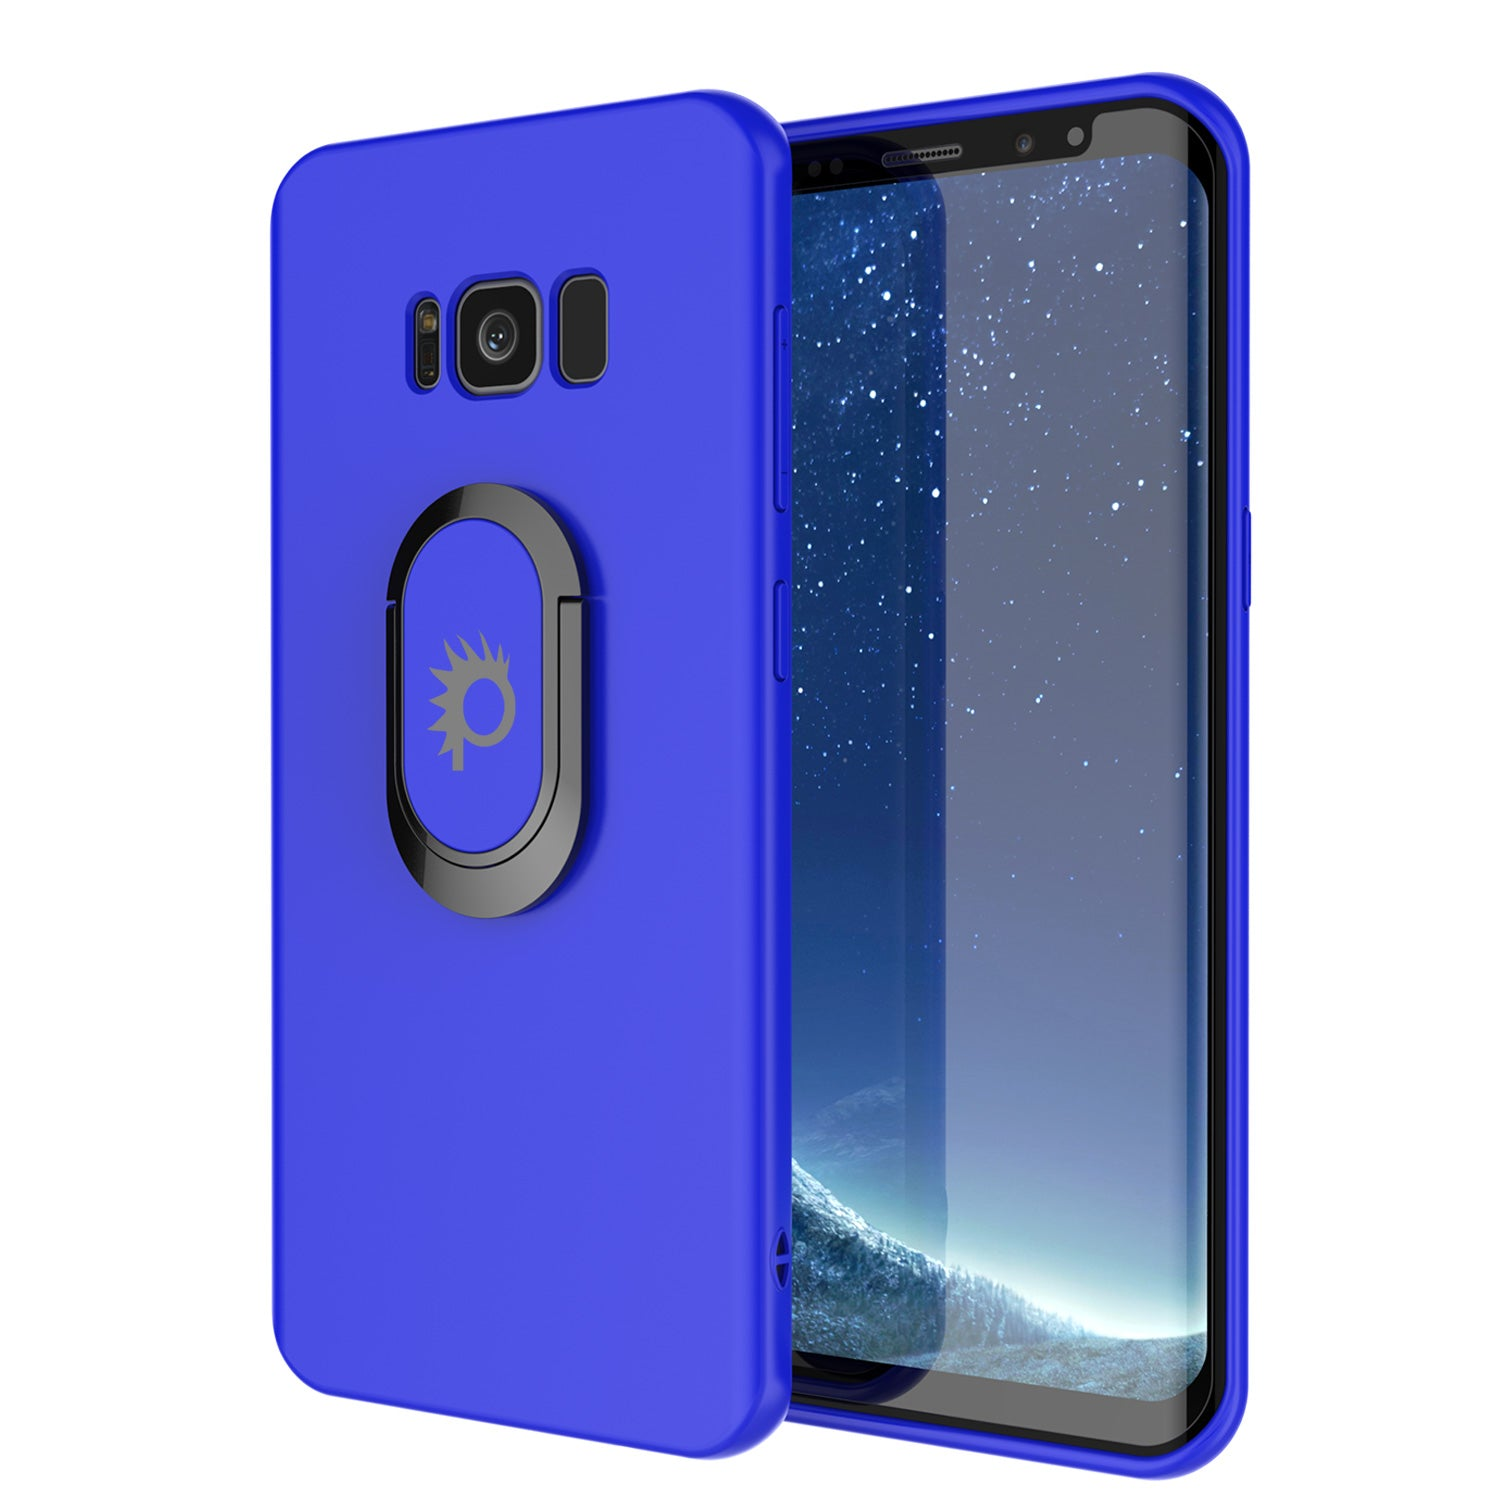 Galaxy S8 Case, Punkcase Magnetix Protective TPU Cover W/ Kickstand, Screen Protector [Blue]